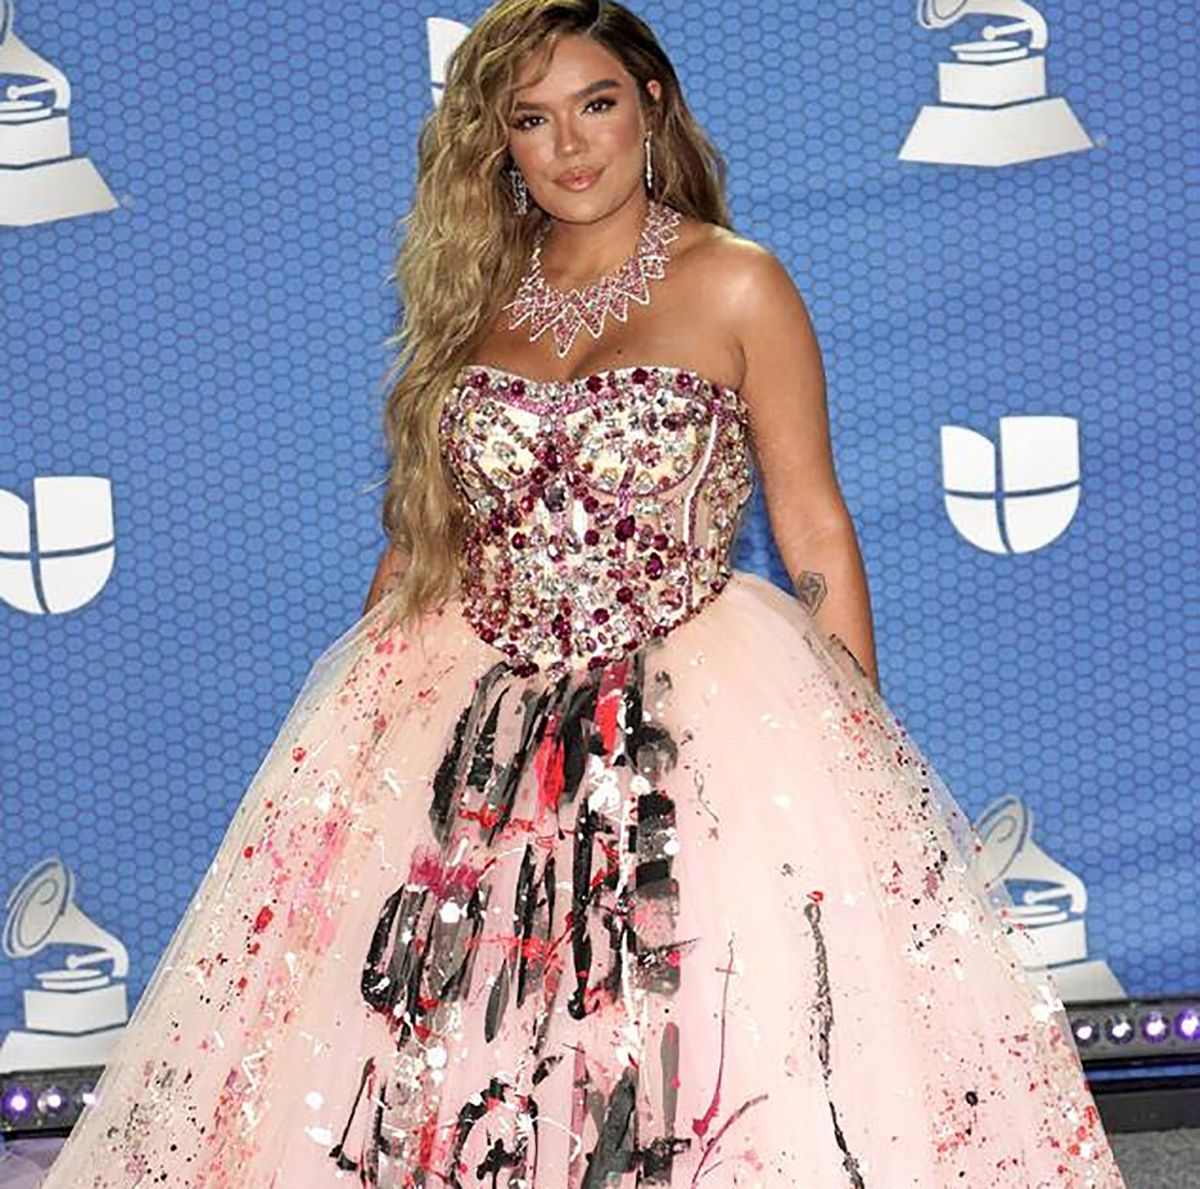 Look why Jomari Goyso came out to defend Karlo G's dress at the Latin Grammy Awards | The State